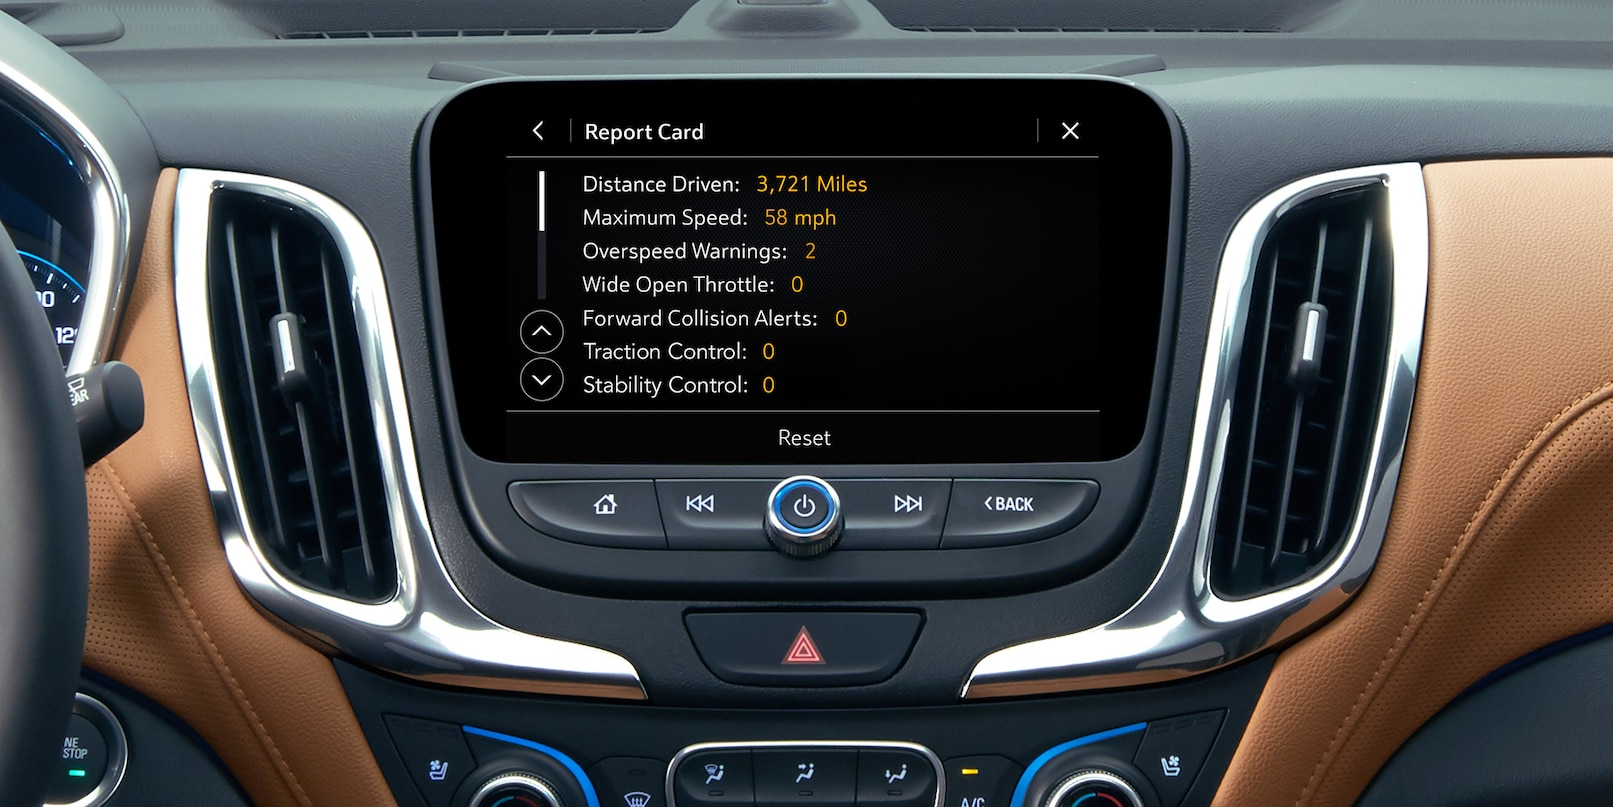 Touchscreen in the 2020 Equinox